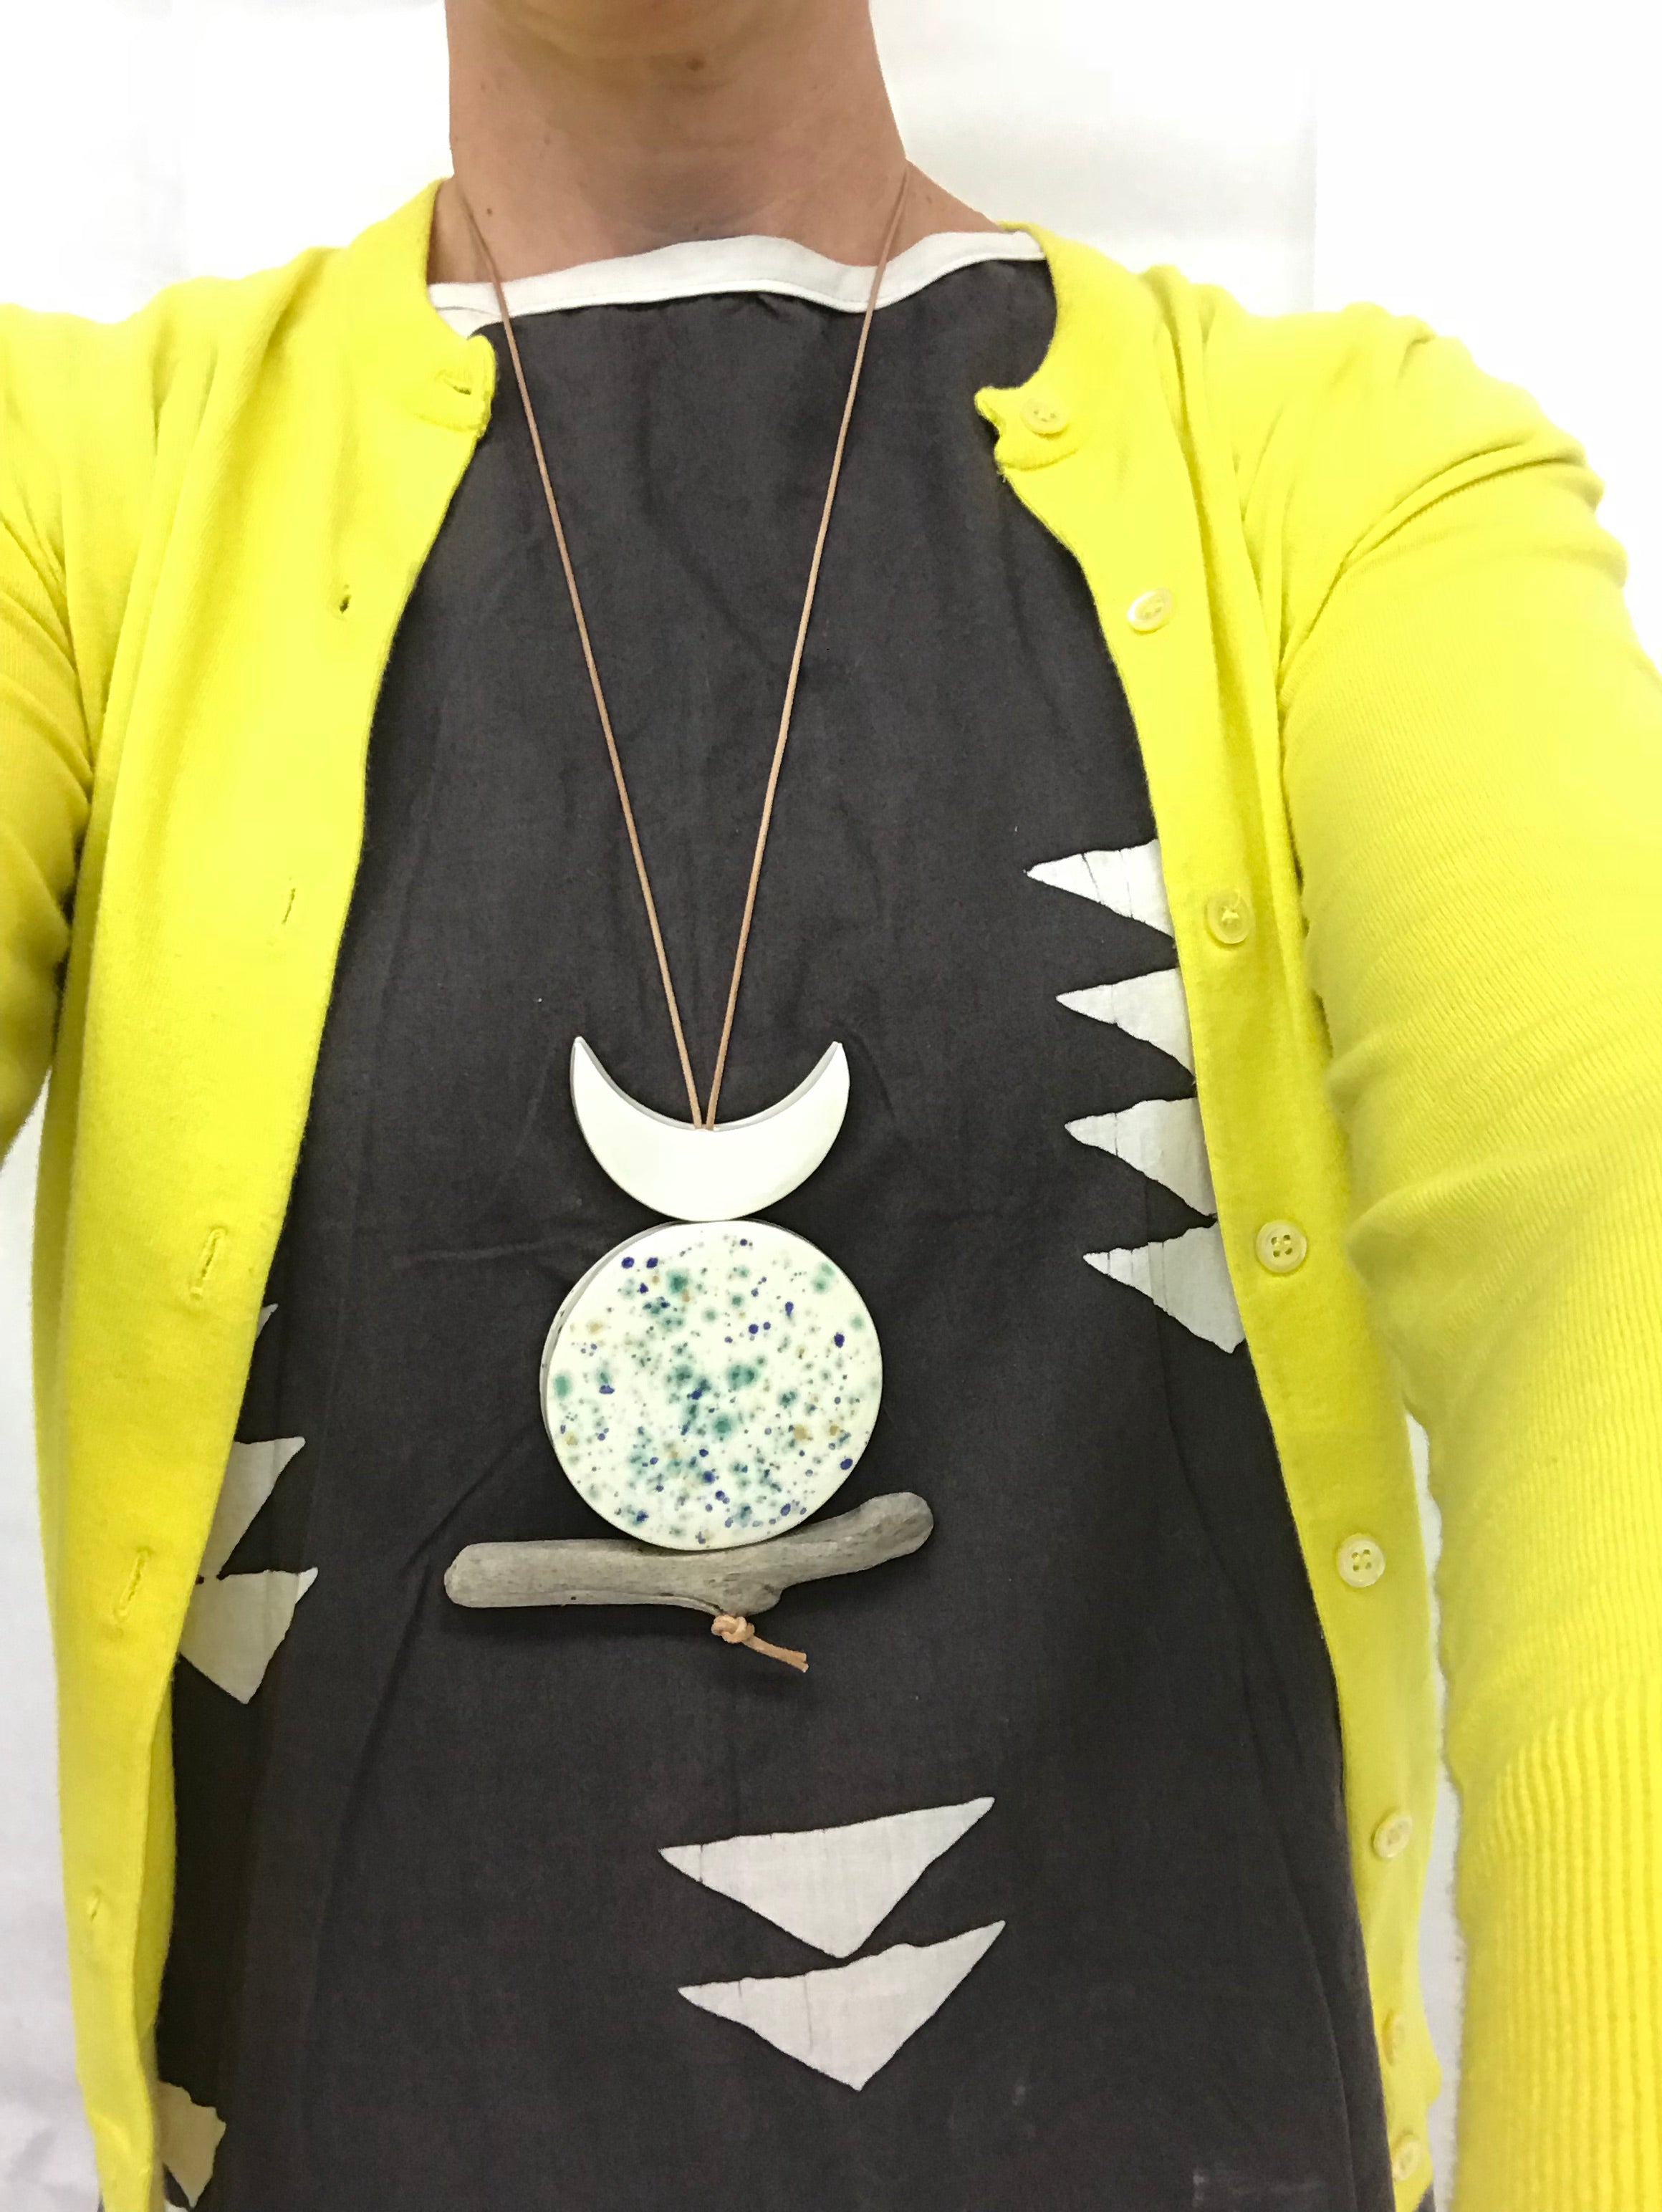 sold - 'infinite & ideal' moon meets ocean one of a kind wearable piece